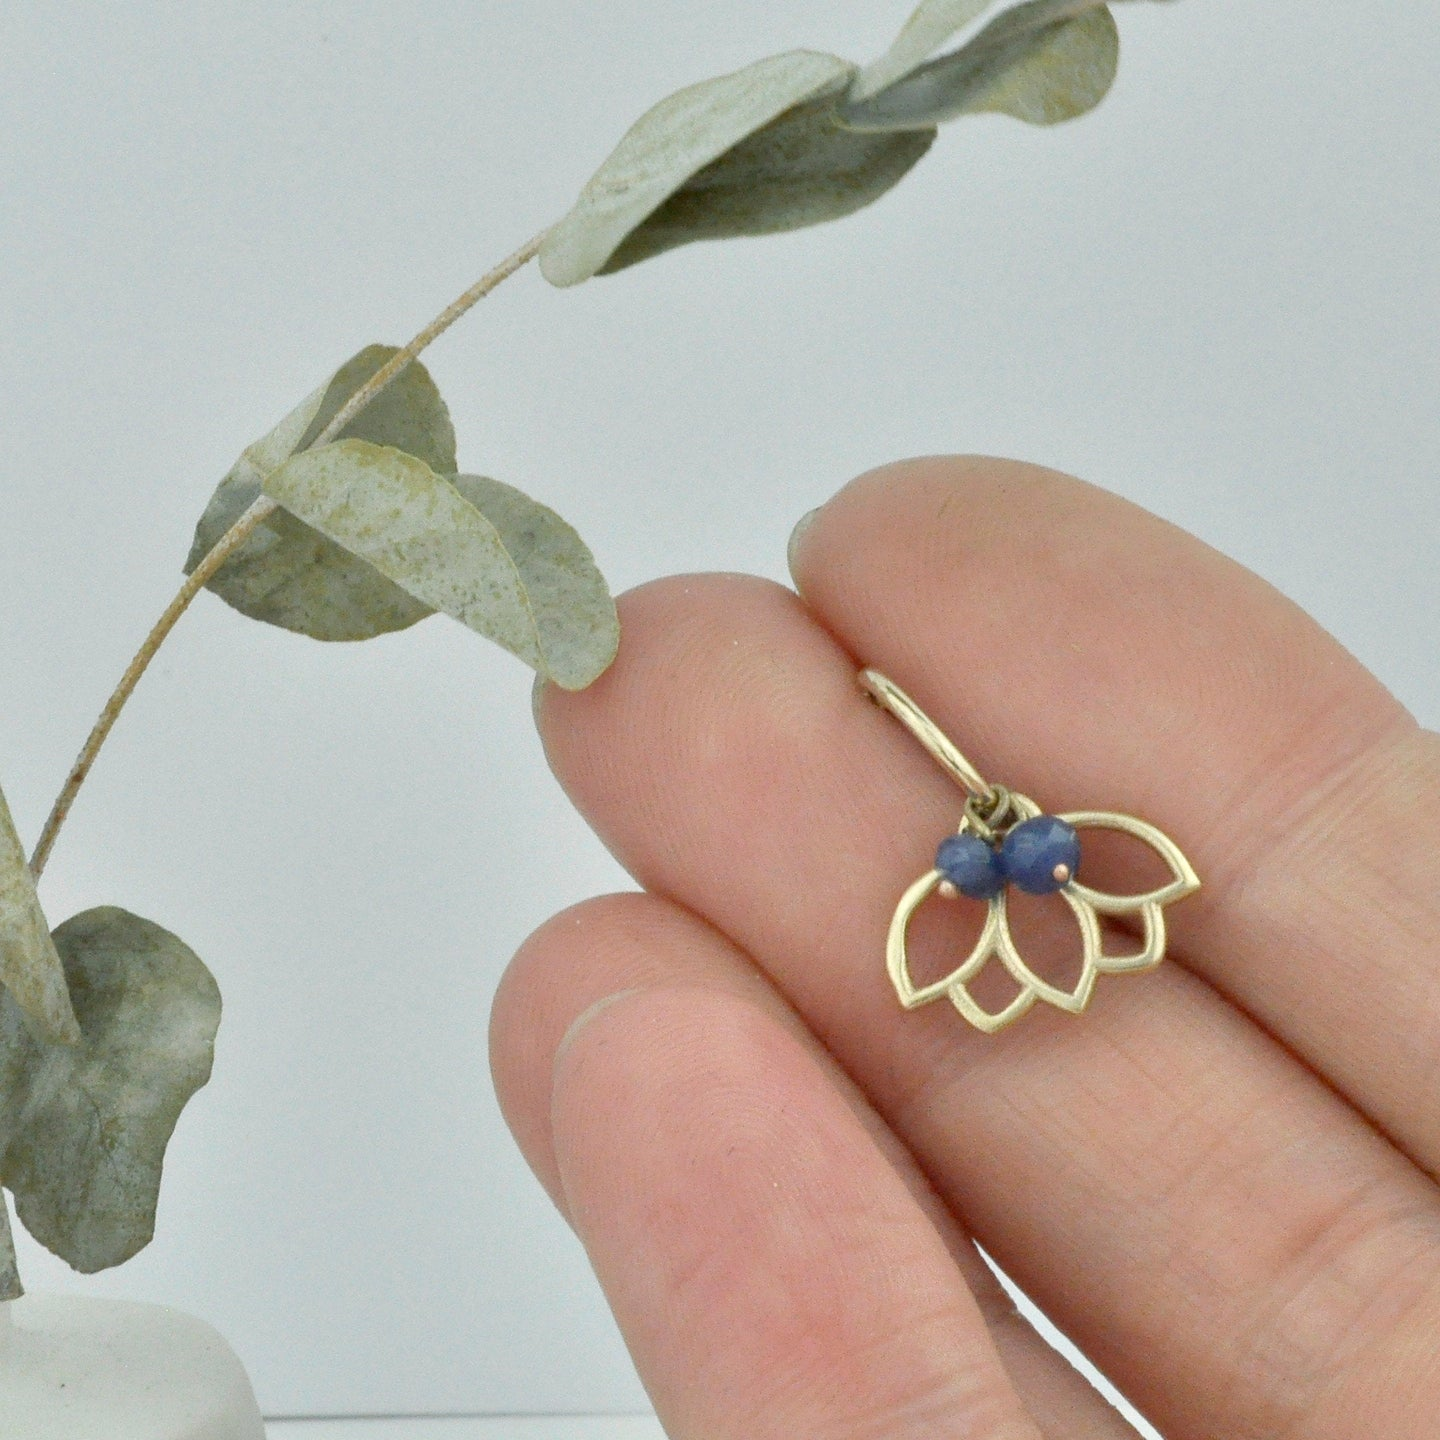 Single Sapphire small 9ct gold hoop earring, Lotus charm, September birthstone